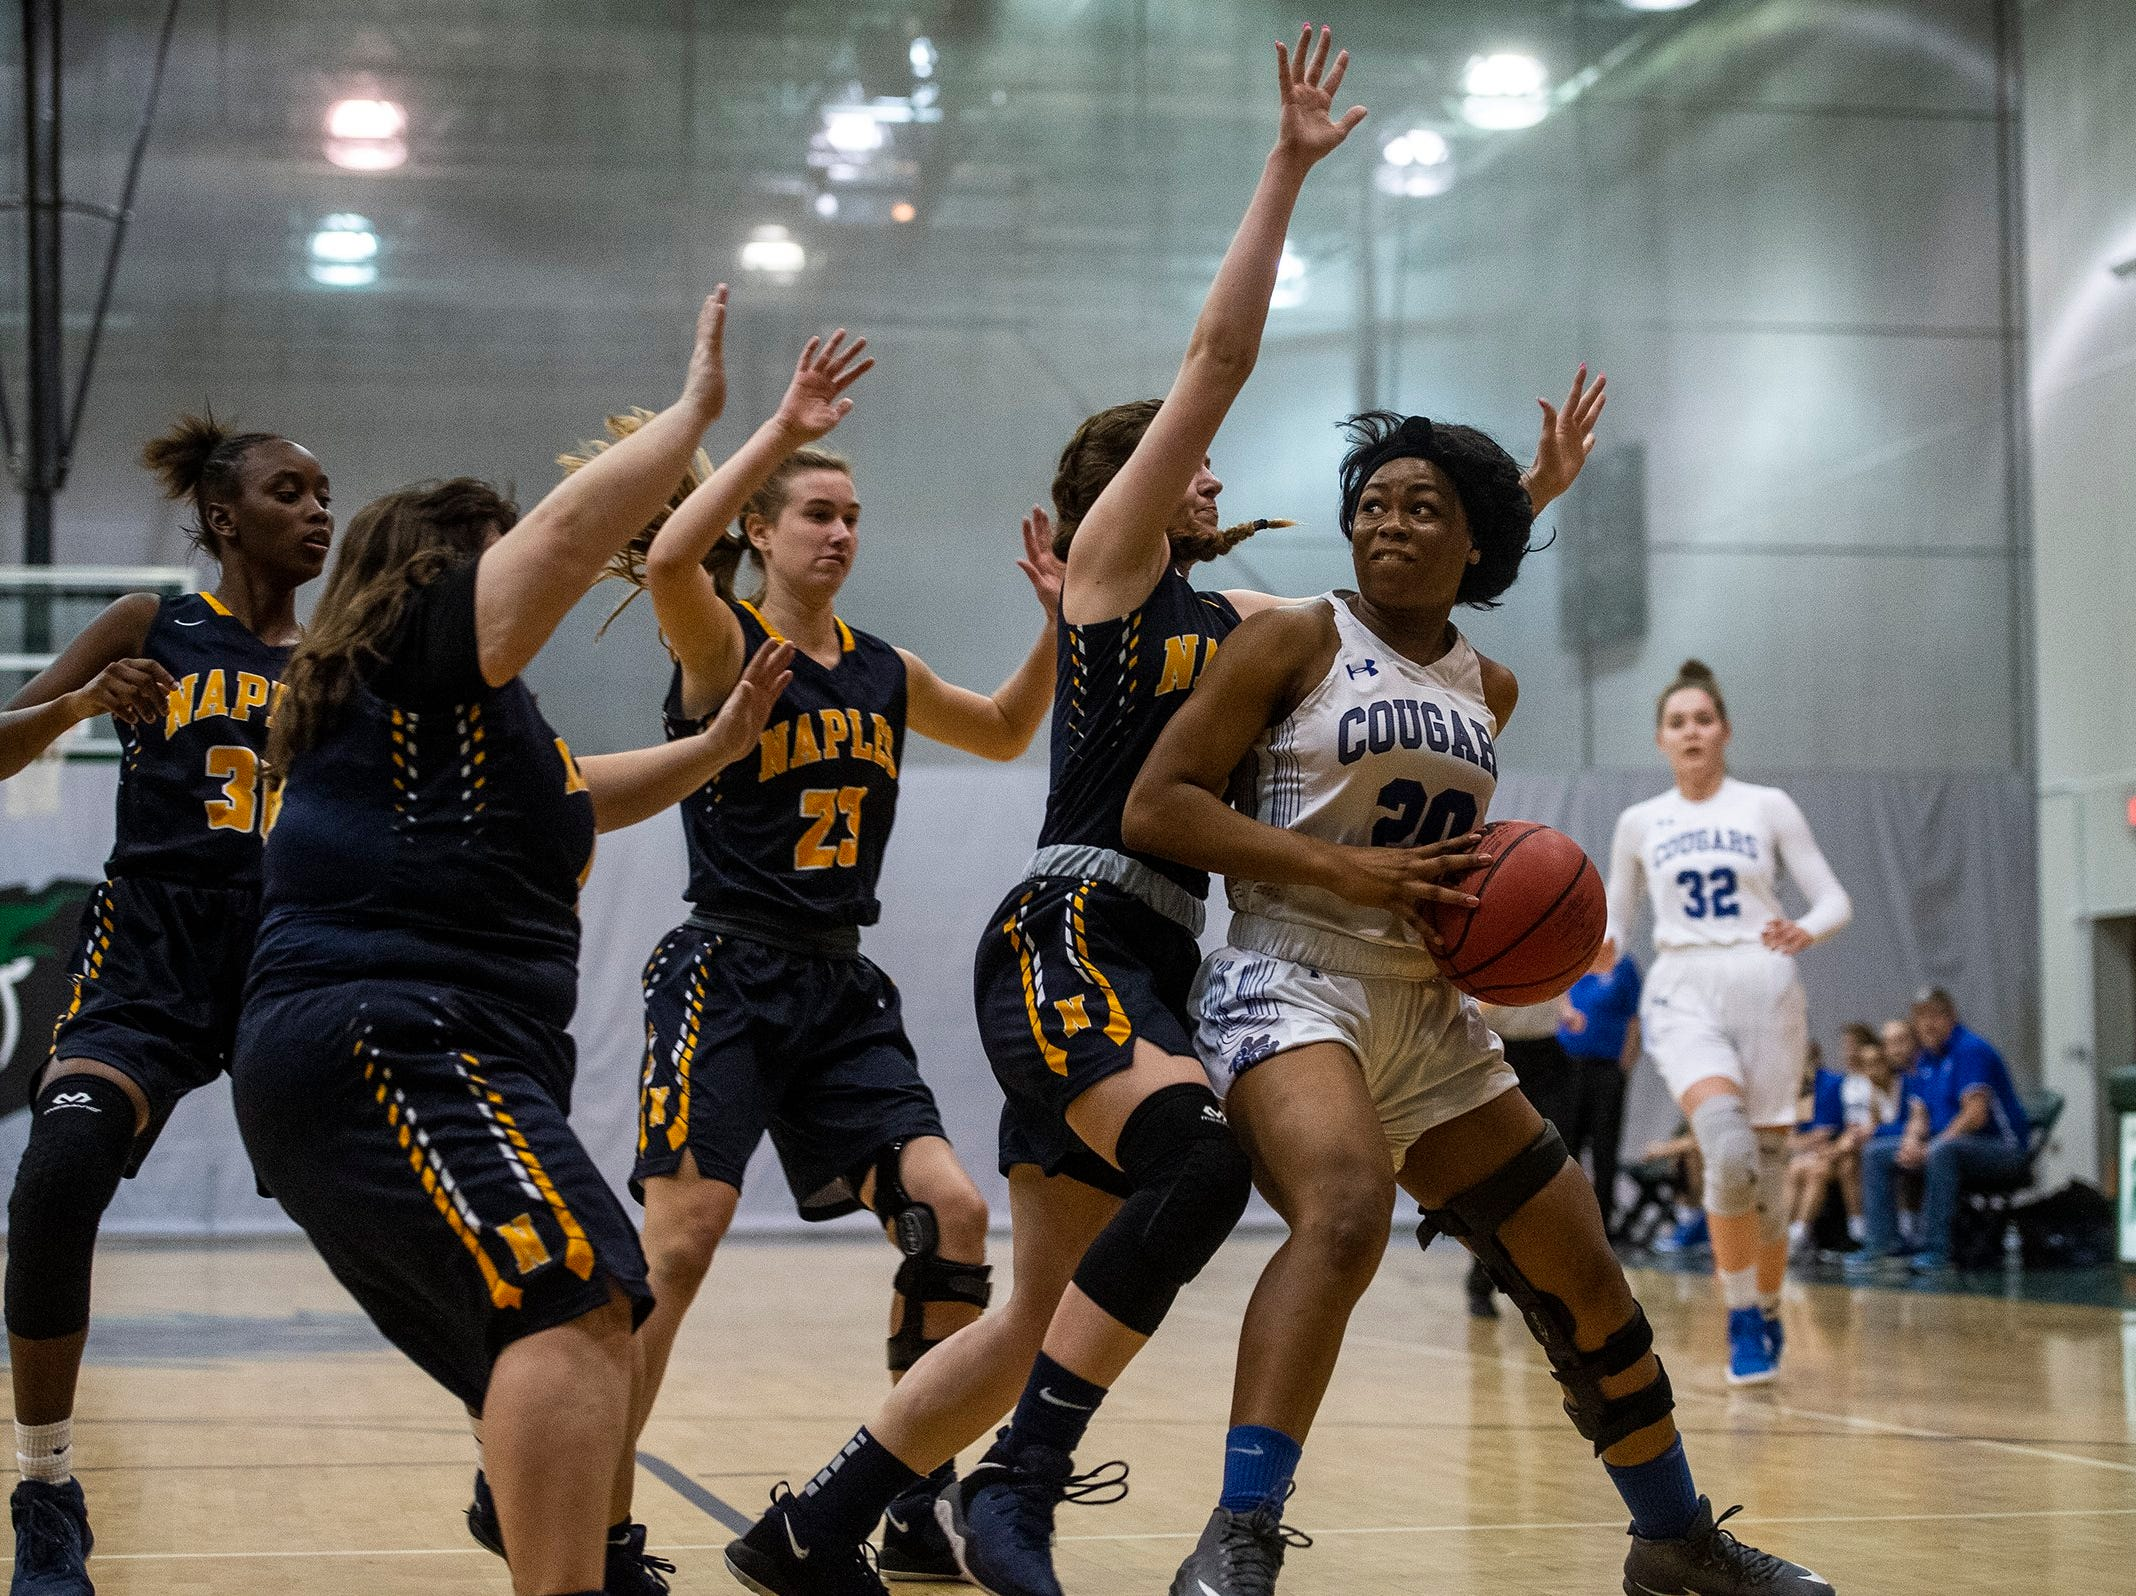 Barron Collier's Jada Mccray tries to get past defense during the Class 7A-District 12 Championship against Naples High School in Naples, Fla., on Friday, Feb. 8, 2019.